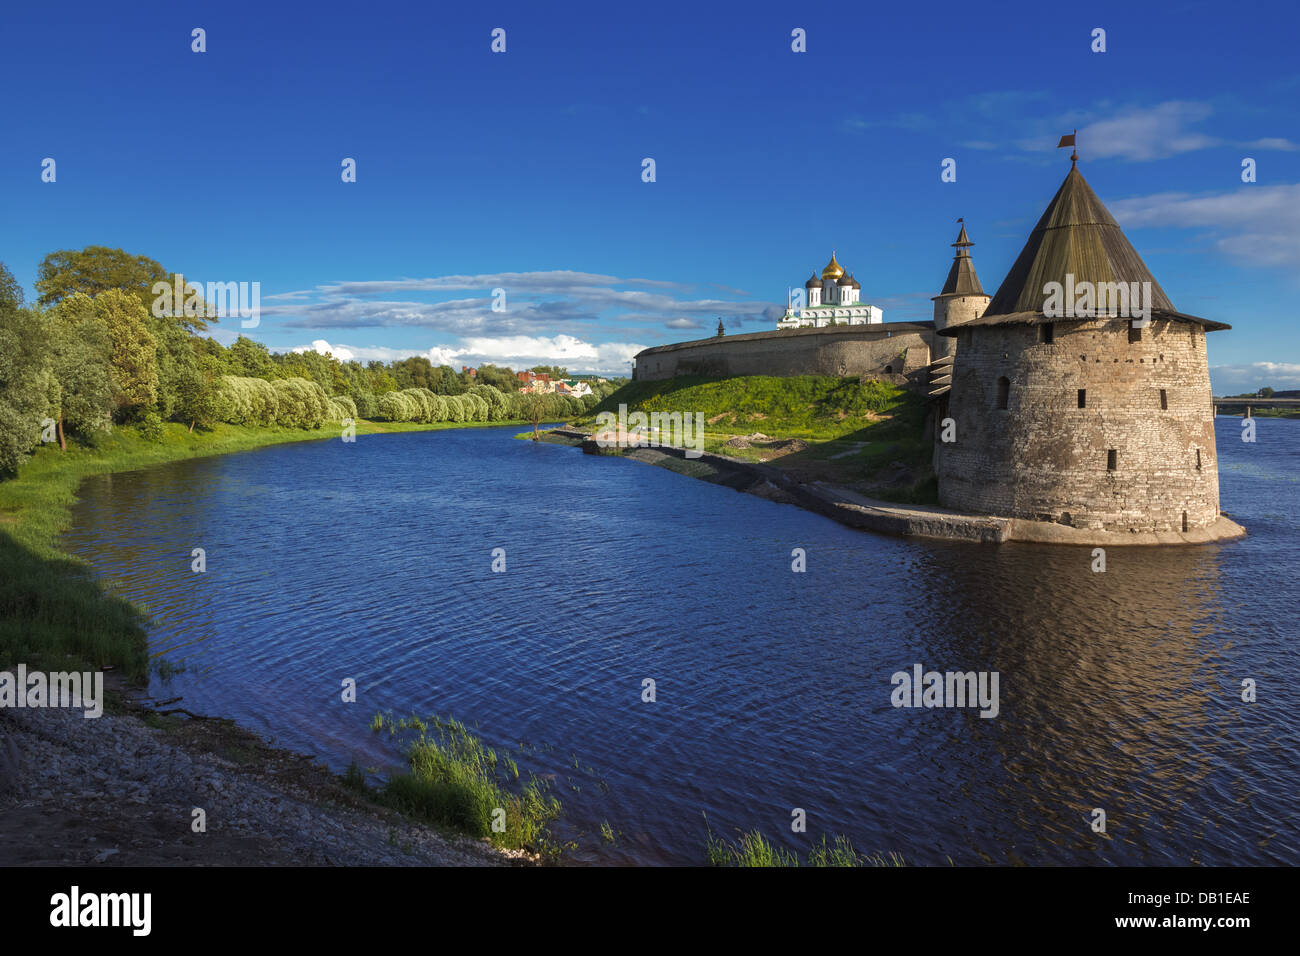 Stone tower and Pskov Kremlin fortress wall at the confluence of two rivers, Russia - Stock Image